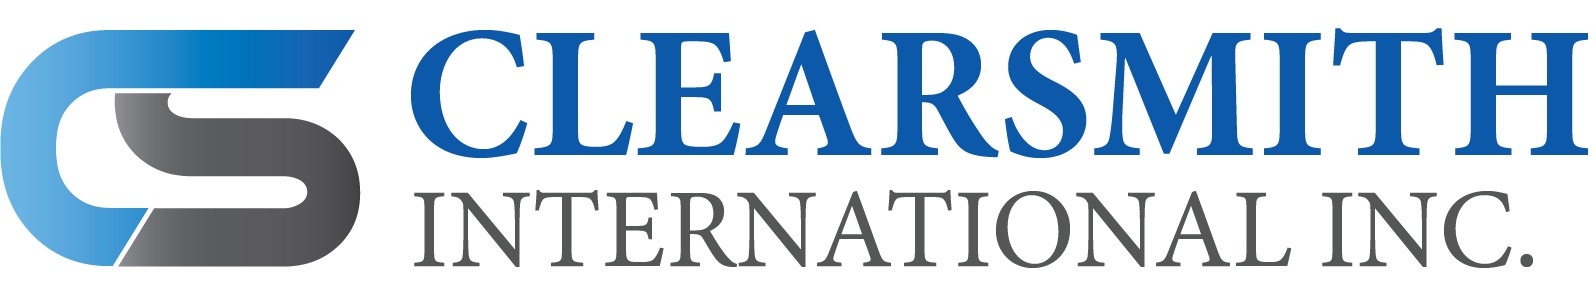 Welcome to Clearsmith International Inc.